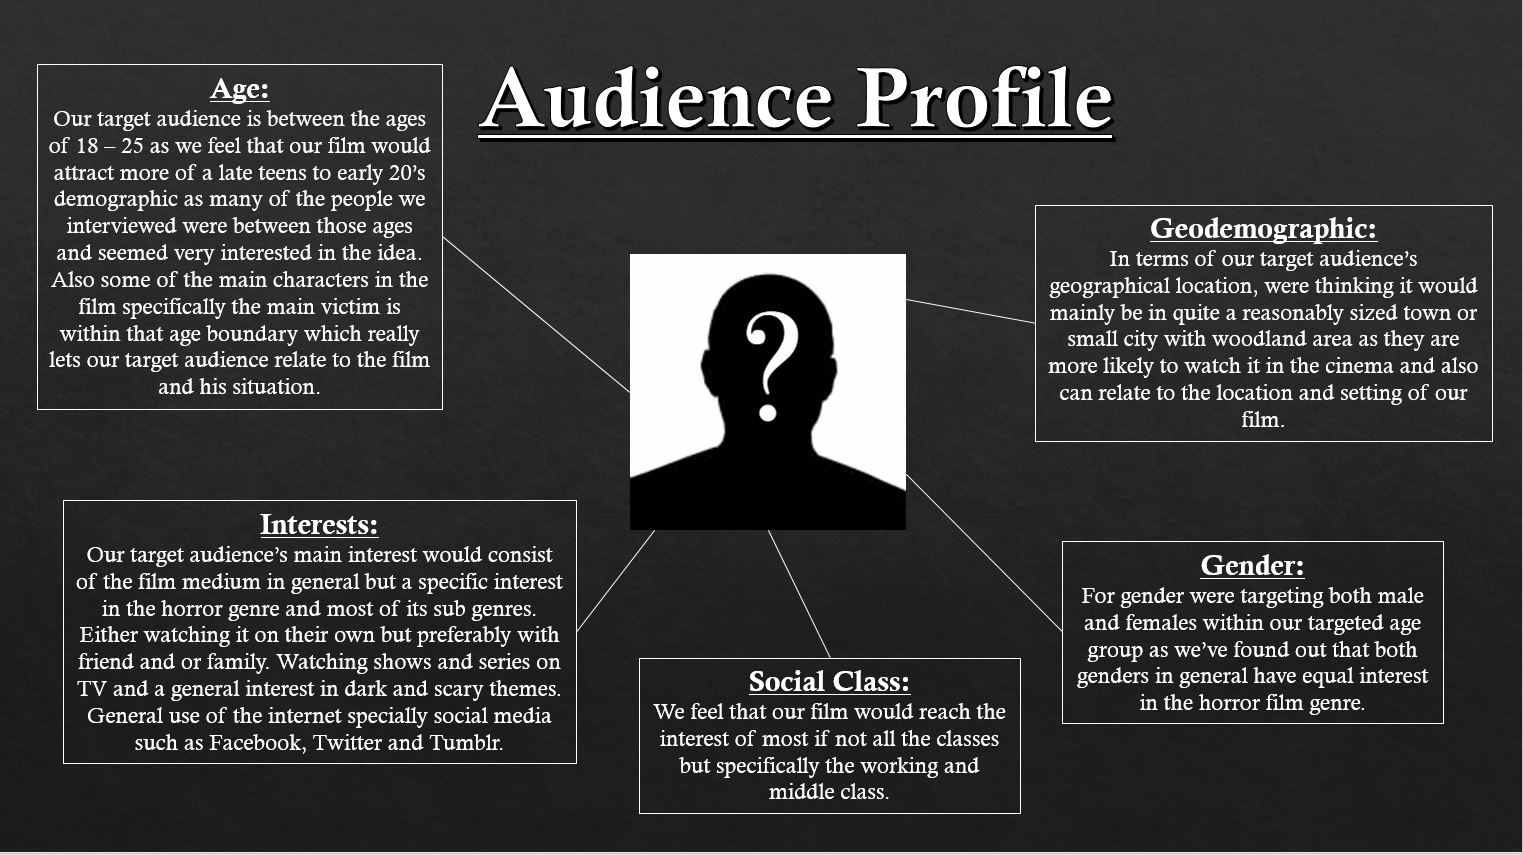 professional writing audience profile A useful customer profile — also known as a persona — is akin to a comprehensive how-to guide for reaching your ideal customers it gives you a structured look at their goals in trying your product, the features and content that matter most to them, and the messaging that will appeal to them.